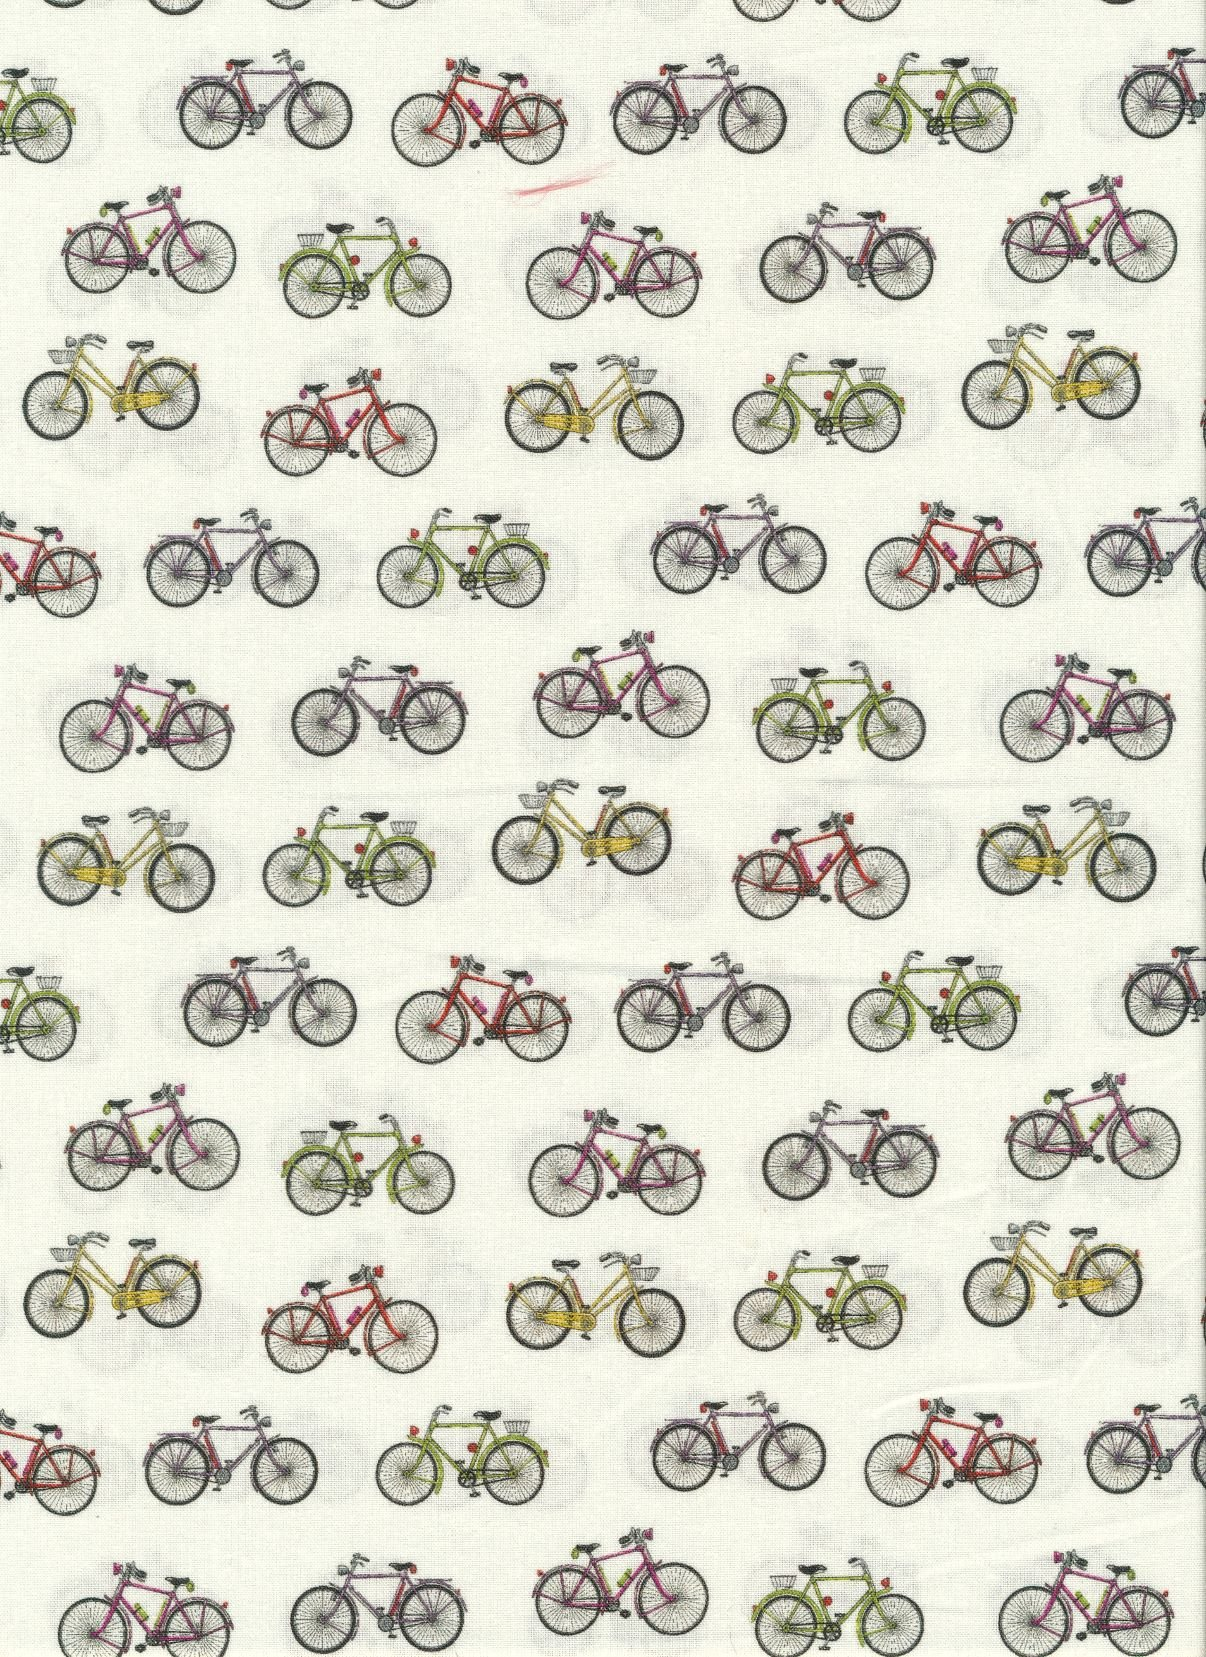 Bicycle (2)